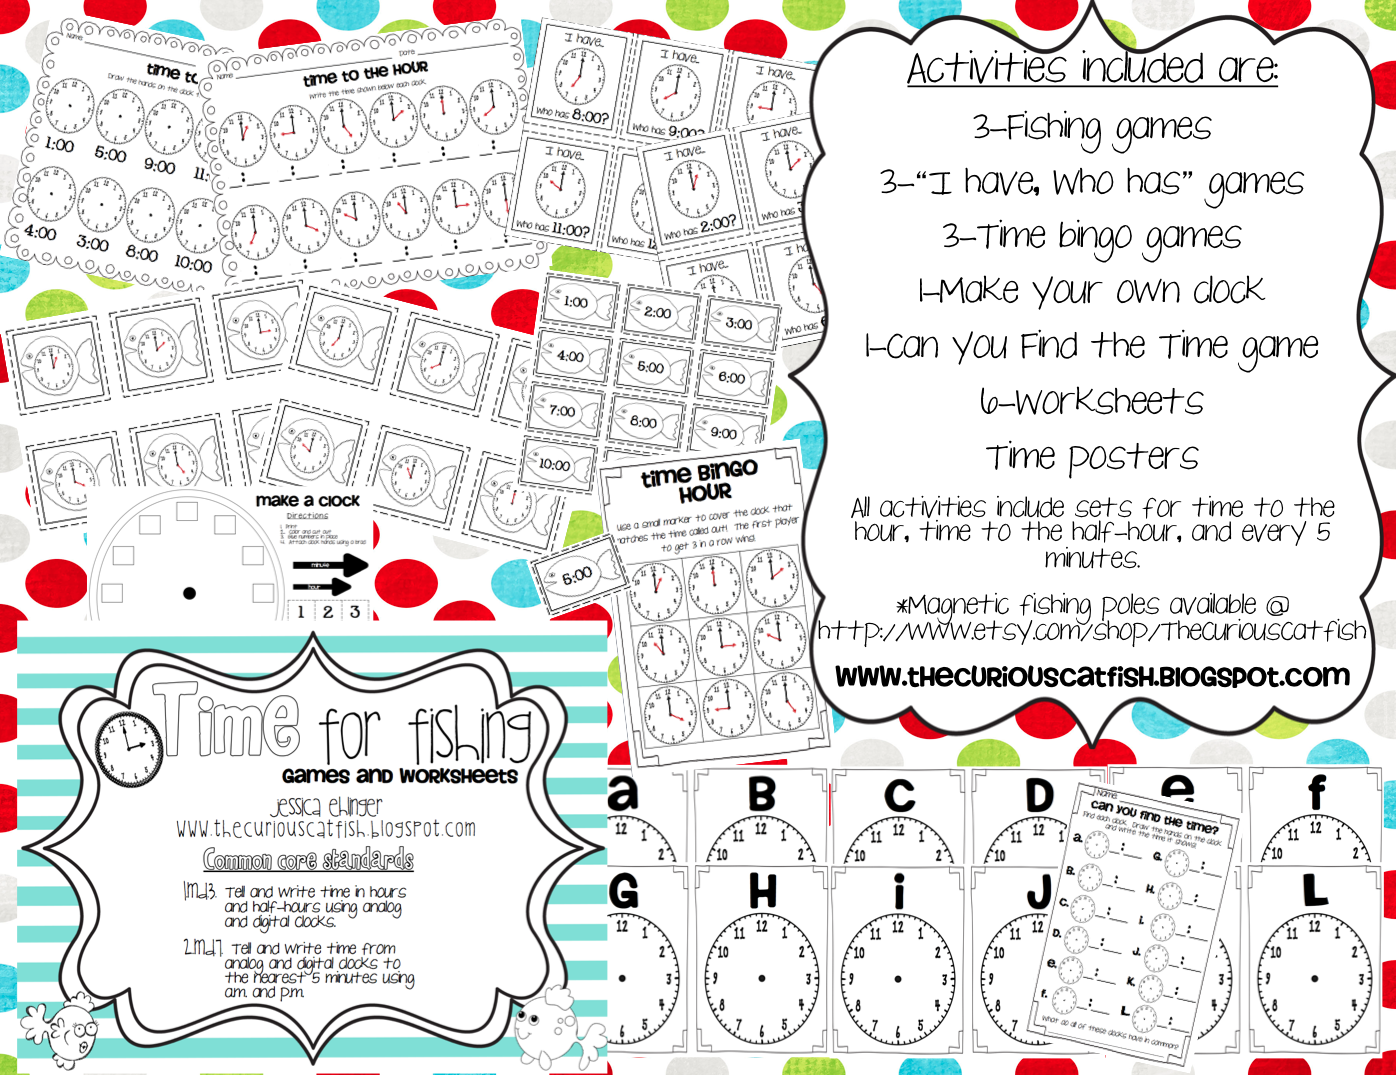 Time For Fishing Games And Worksheets